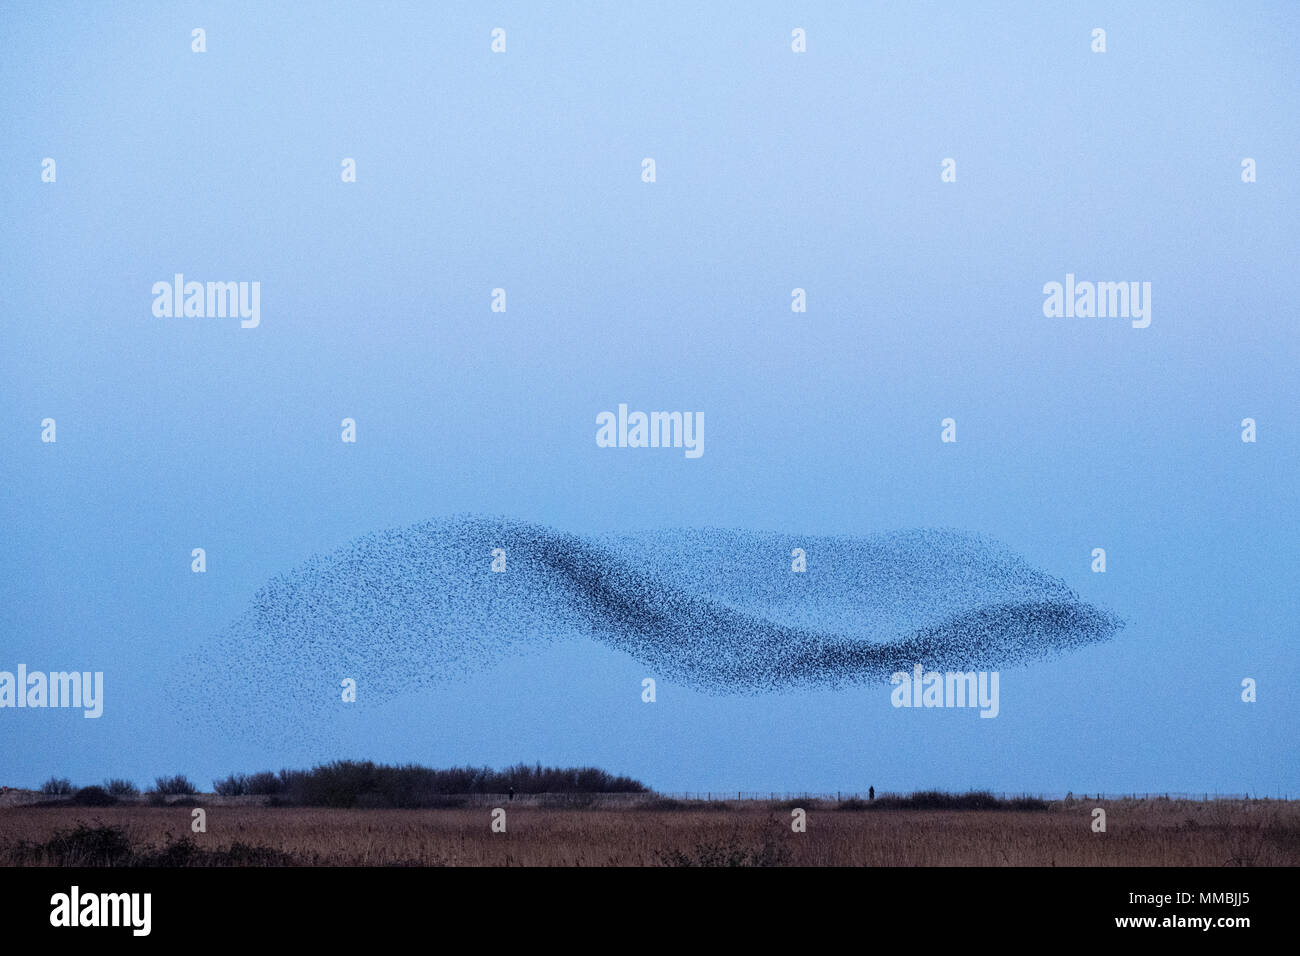 Spectacular murmuration of starlings, a swooping mass of thousands of birds in the sky. - Stock Image